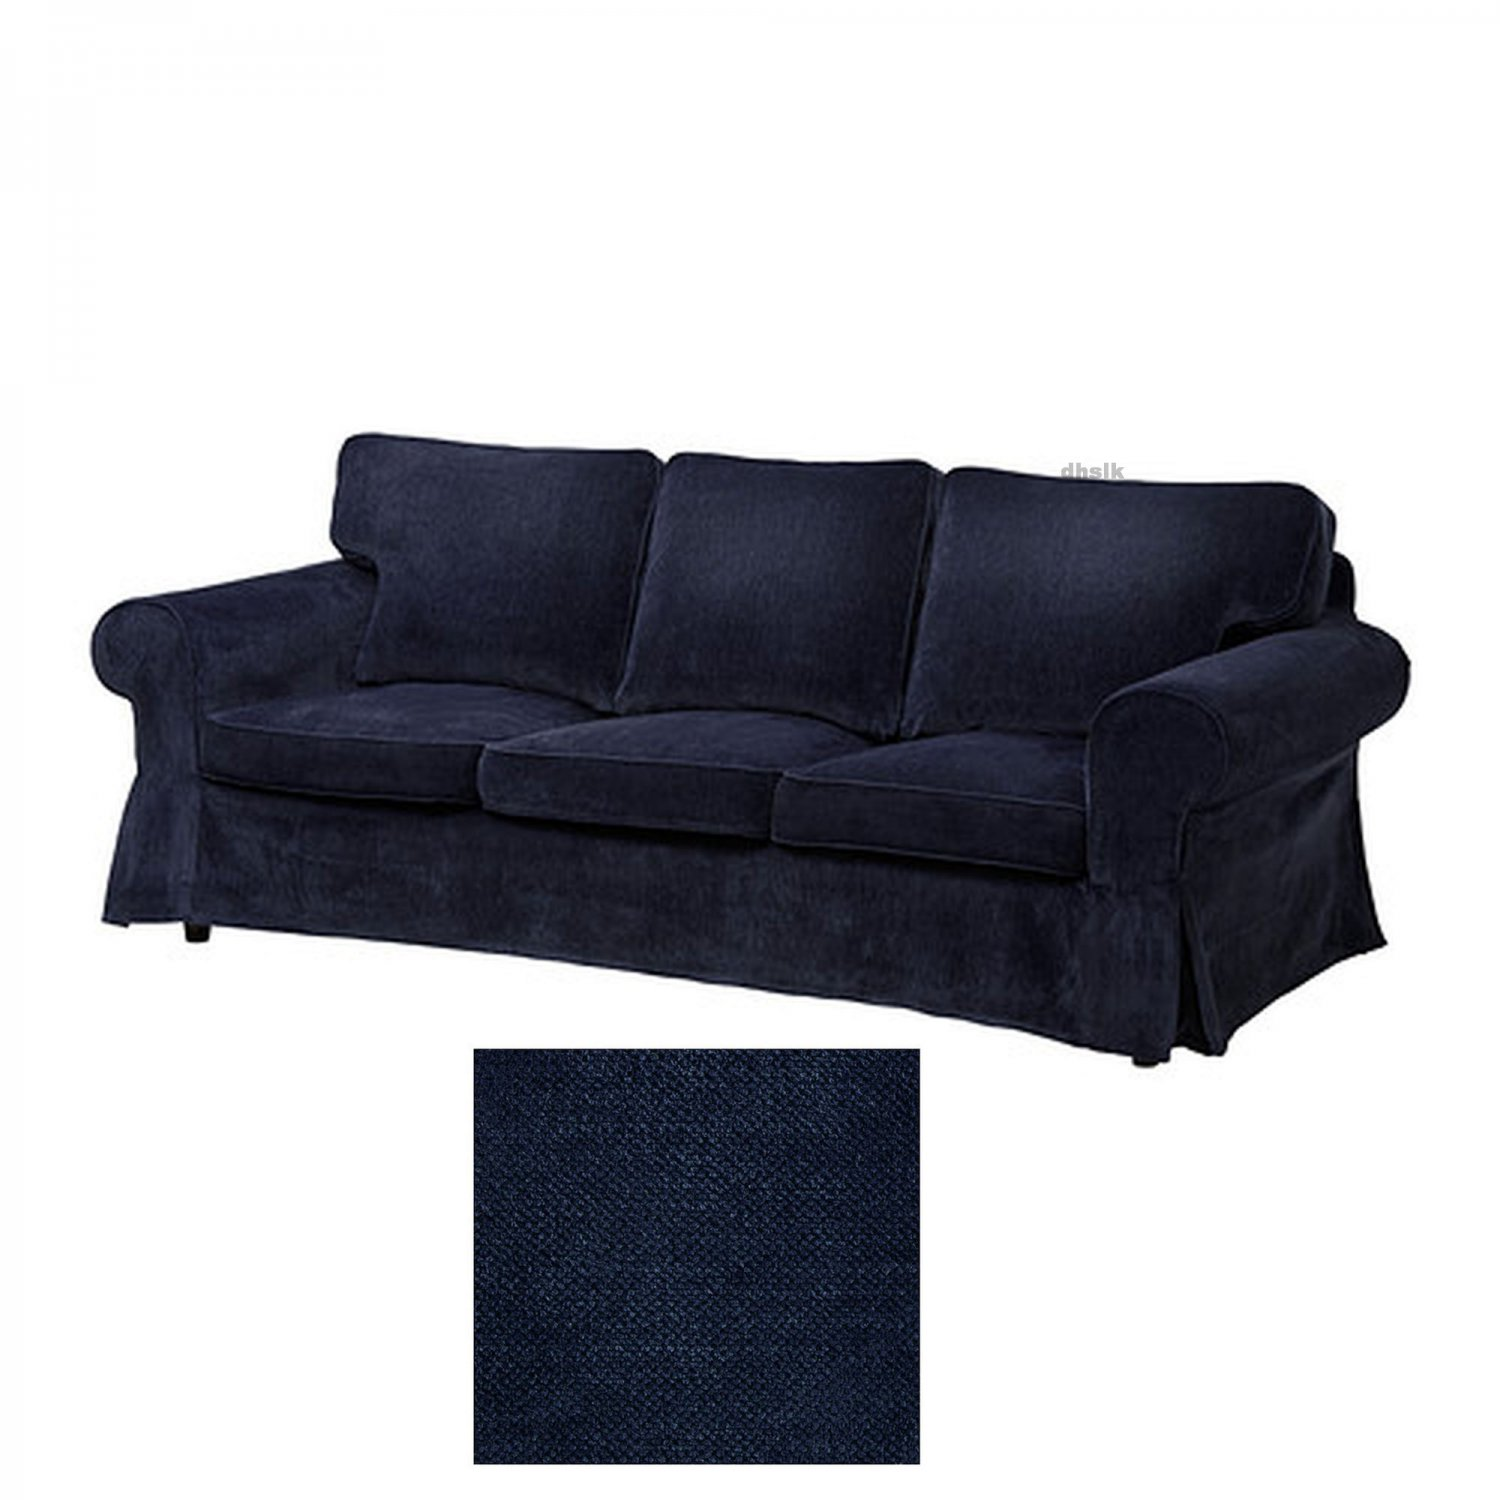 ikea karlanda sofa covers uk table behind couch ektorp 3 seat slipcover cover vellinge dark blue